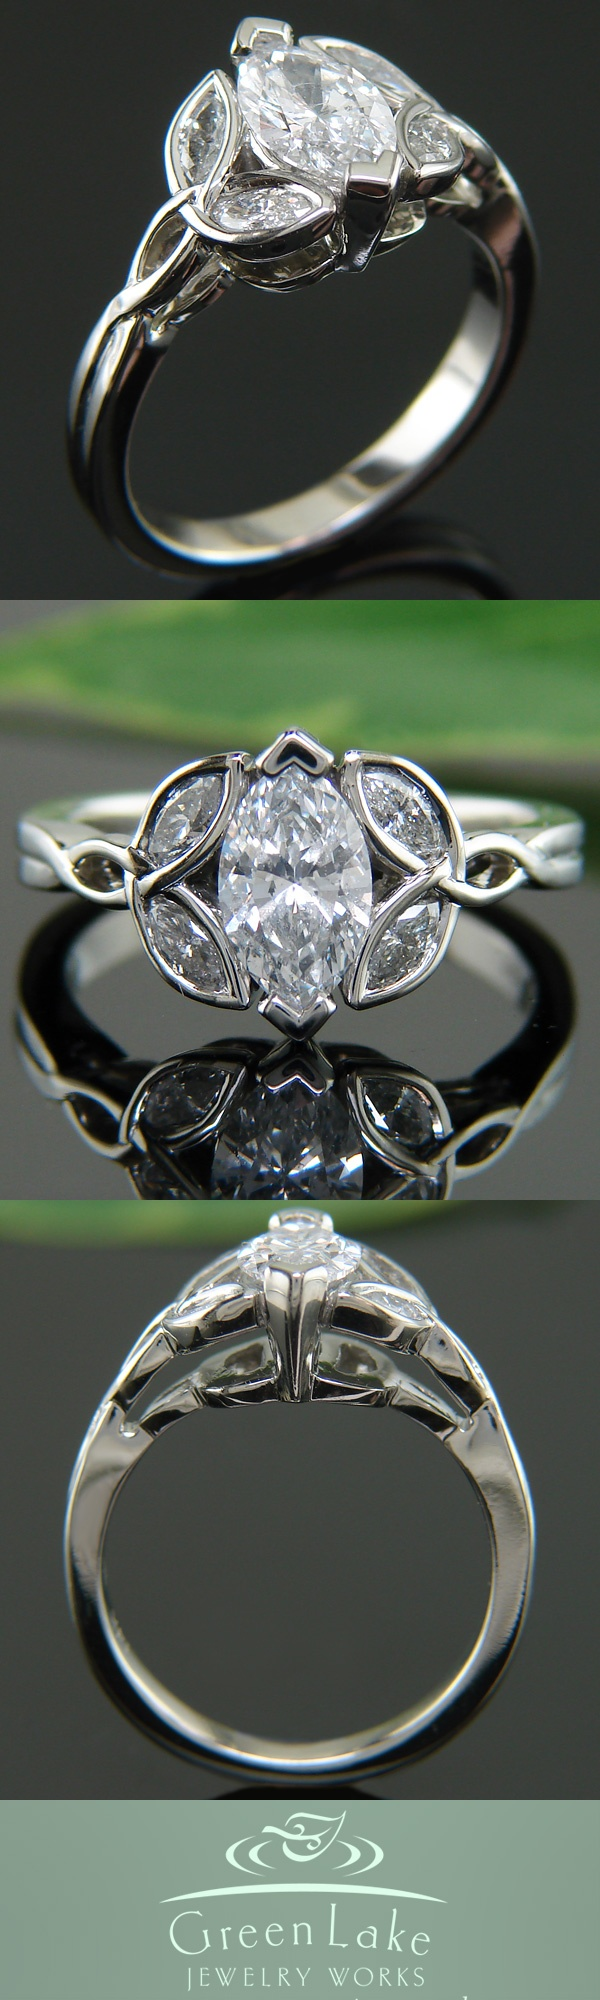 Custom made trinity ring in 14K X1 white gold with marquis-cut diamonds.